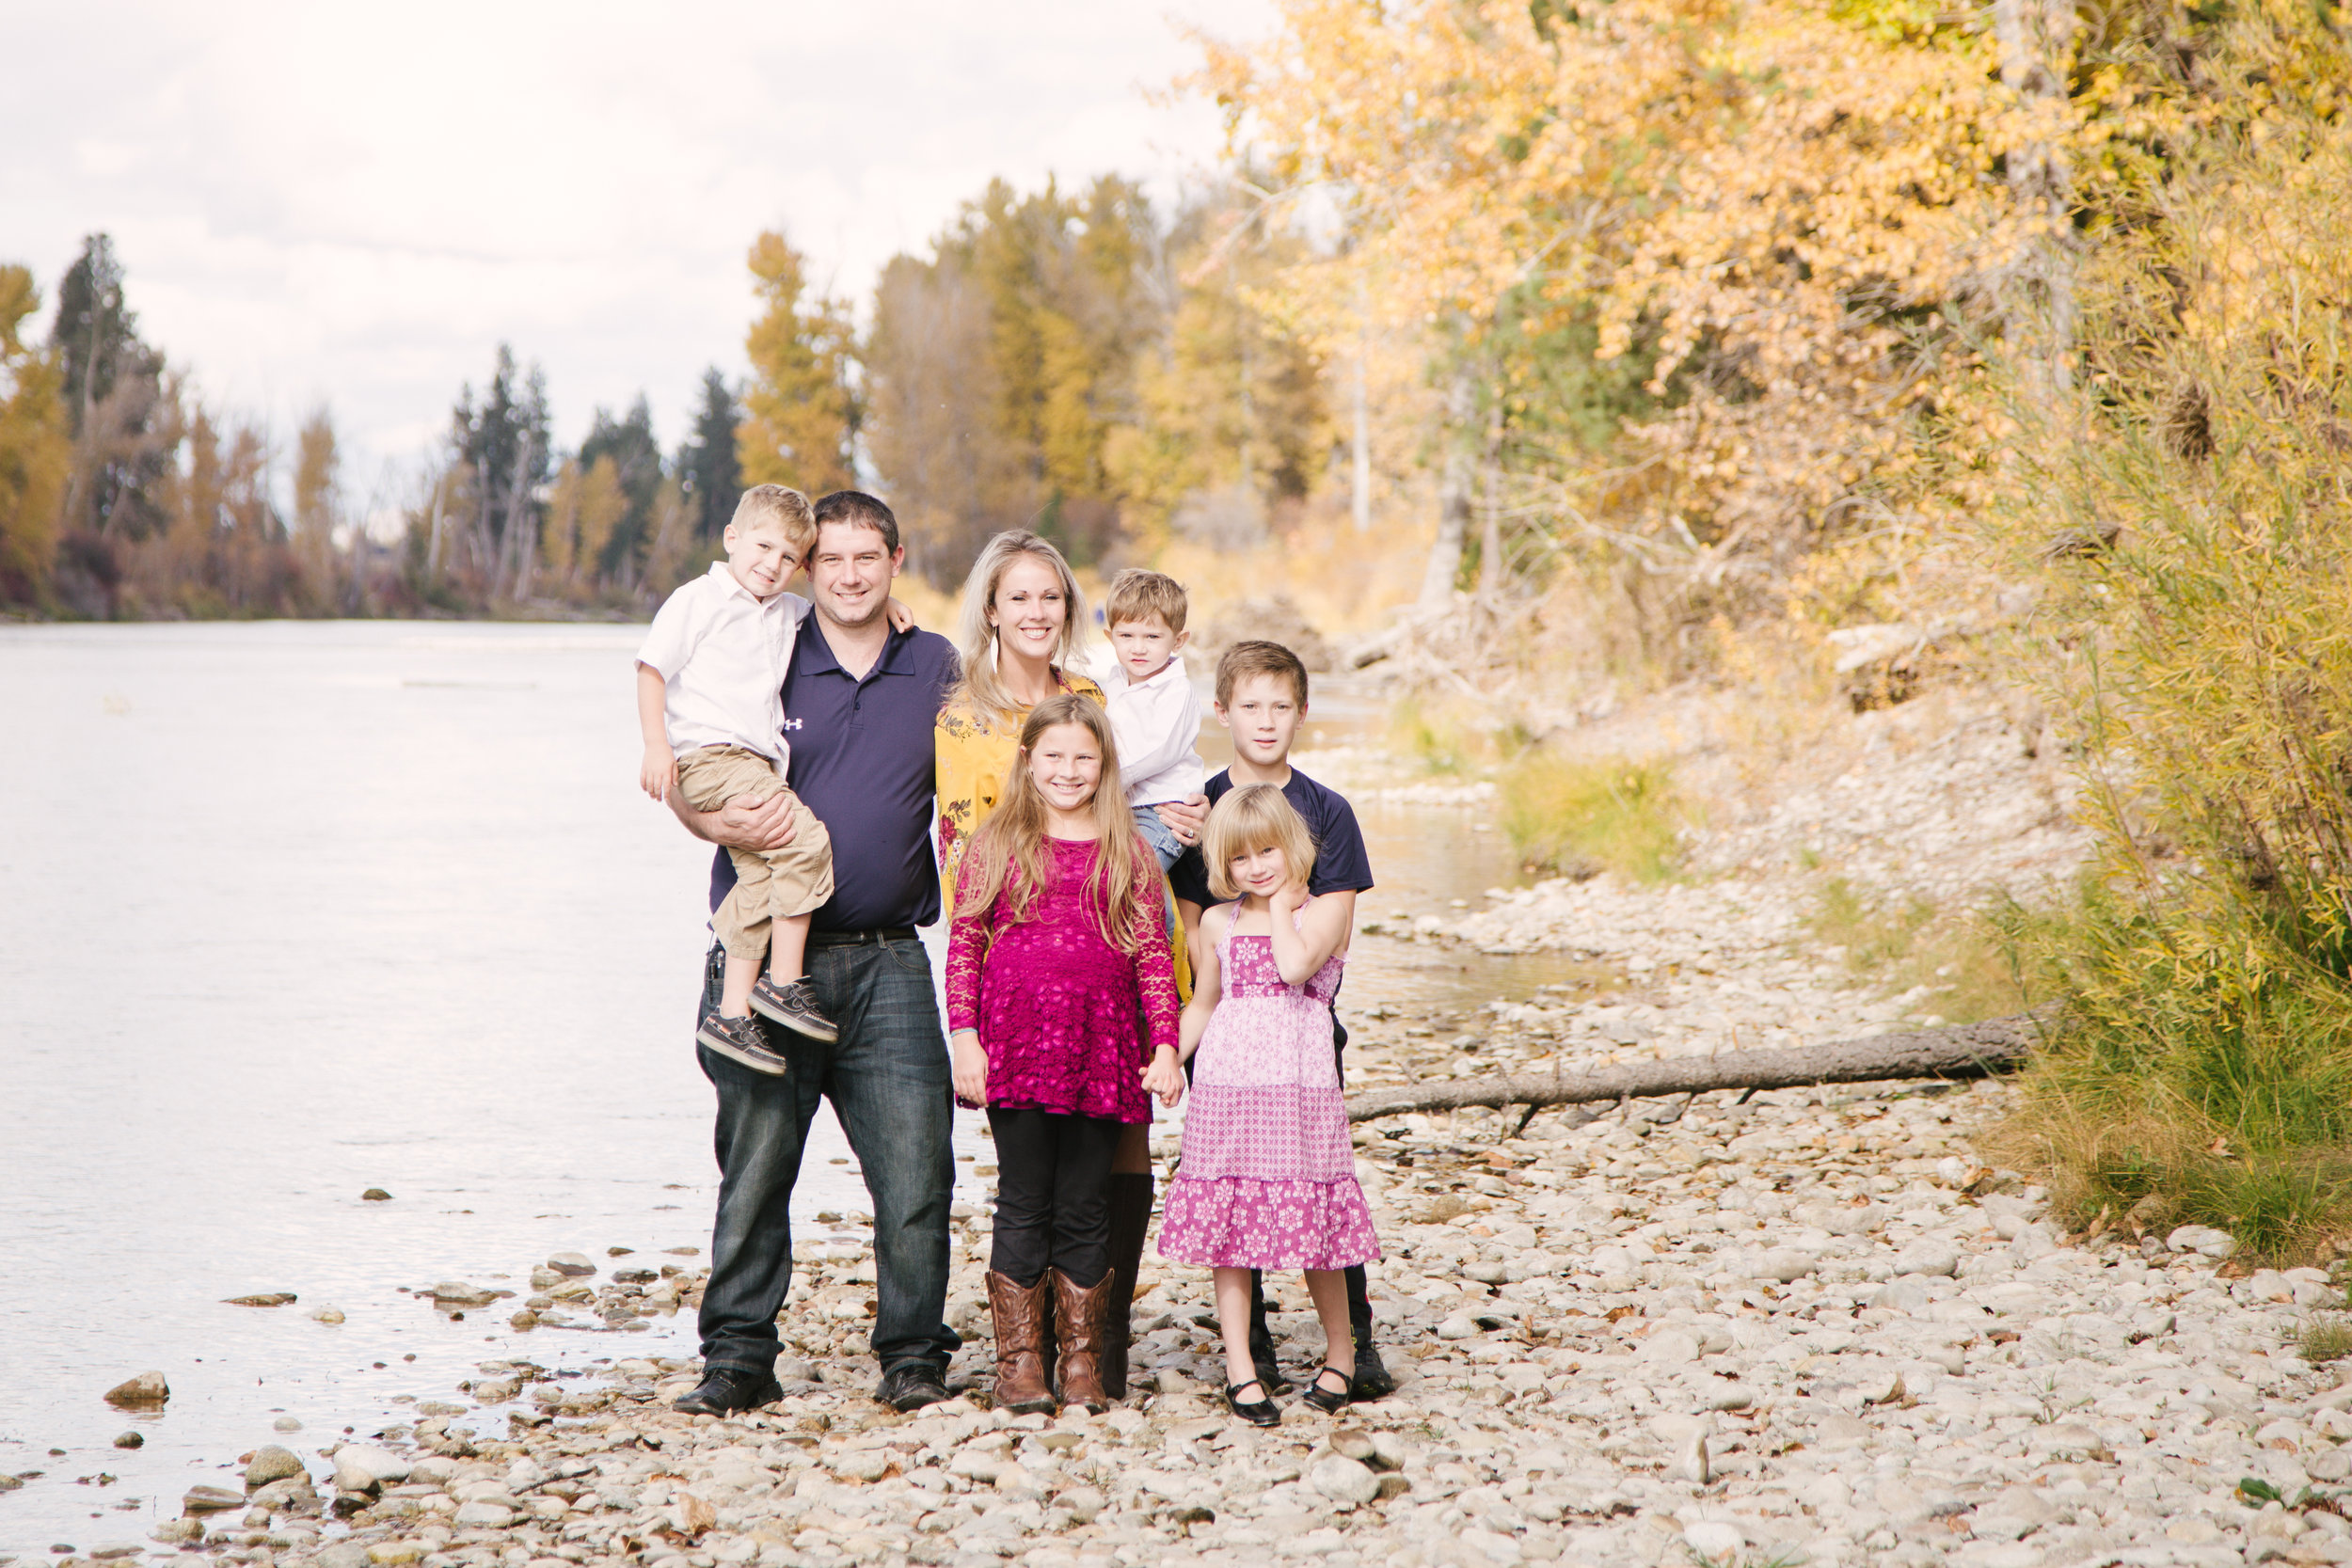 ashleytintingerphotography.com - Missoula Family Photographer - Laufenberg SP - 07.jpg